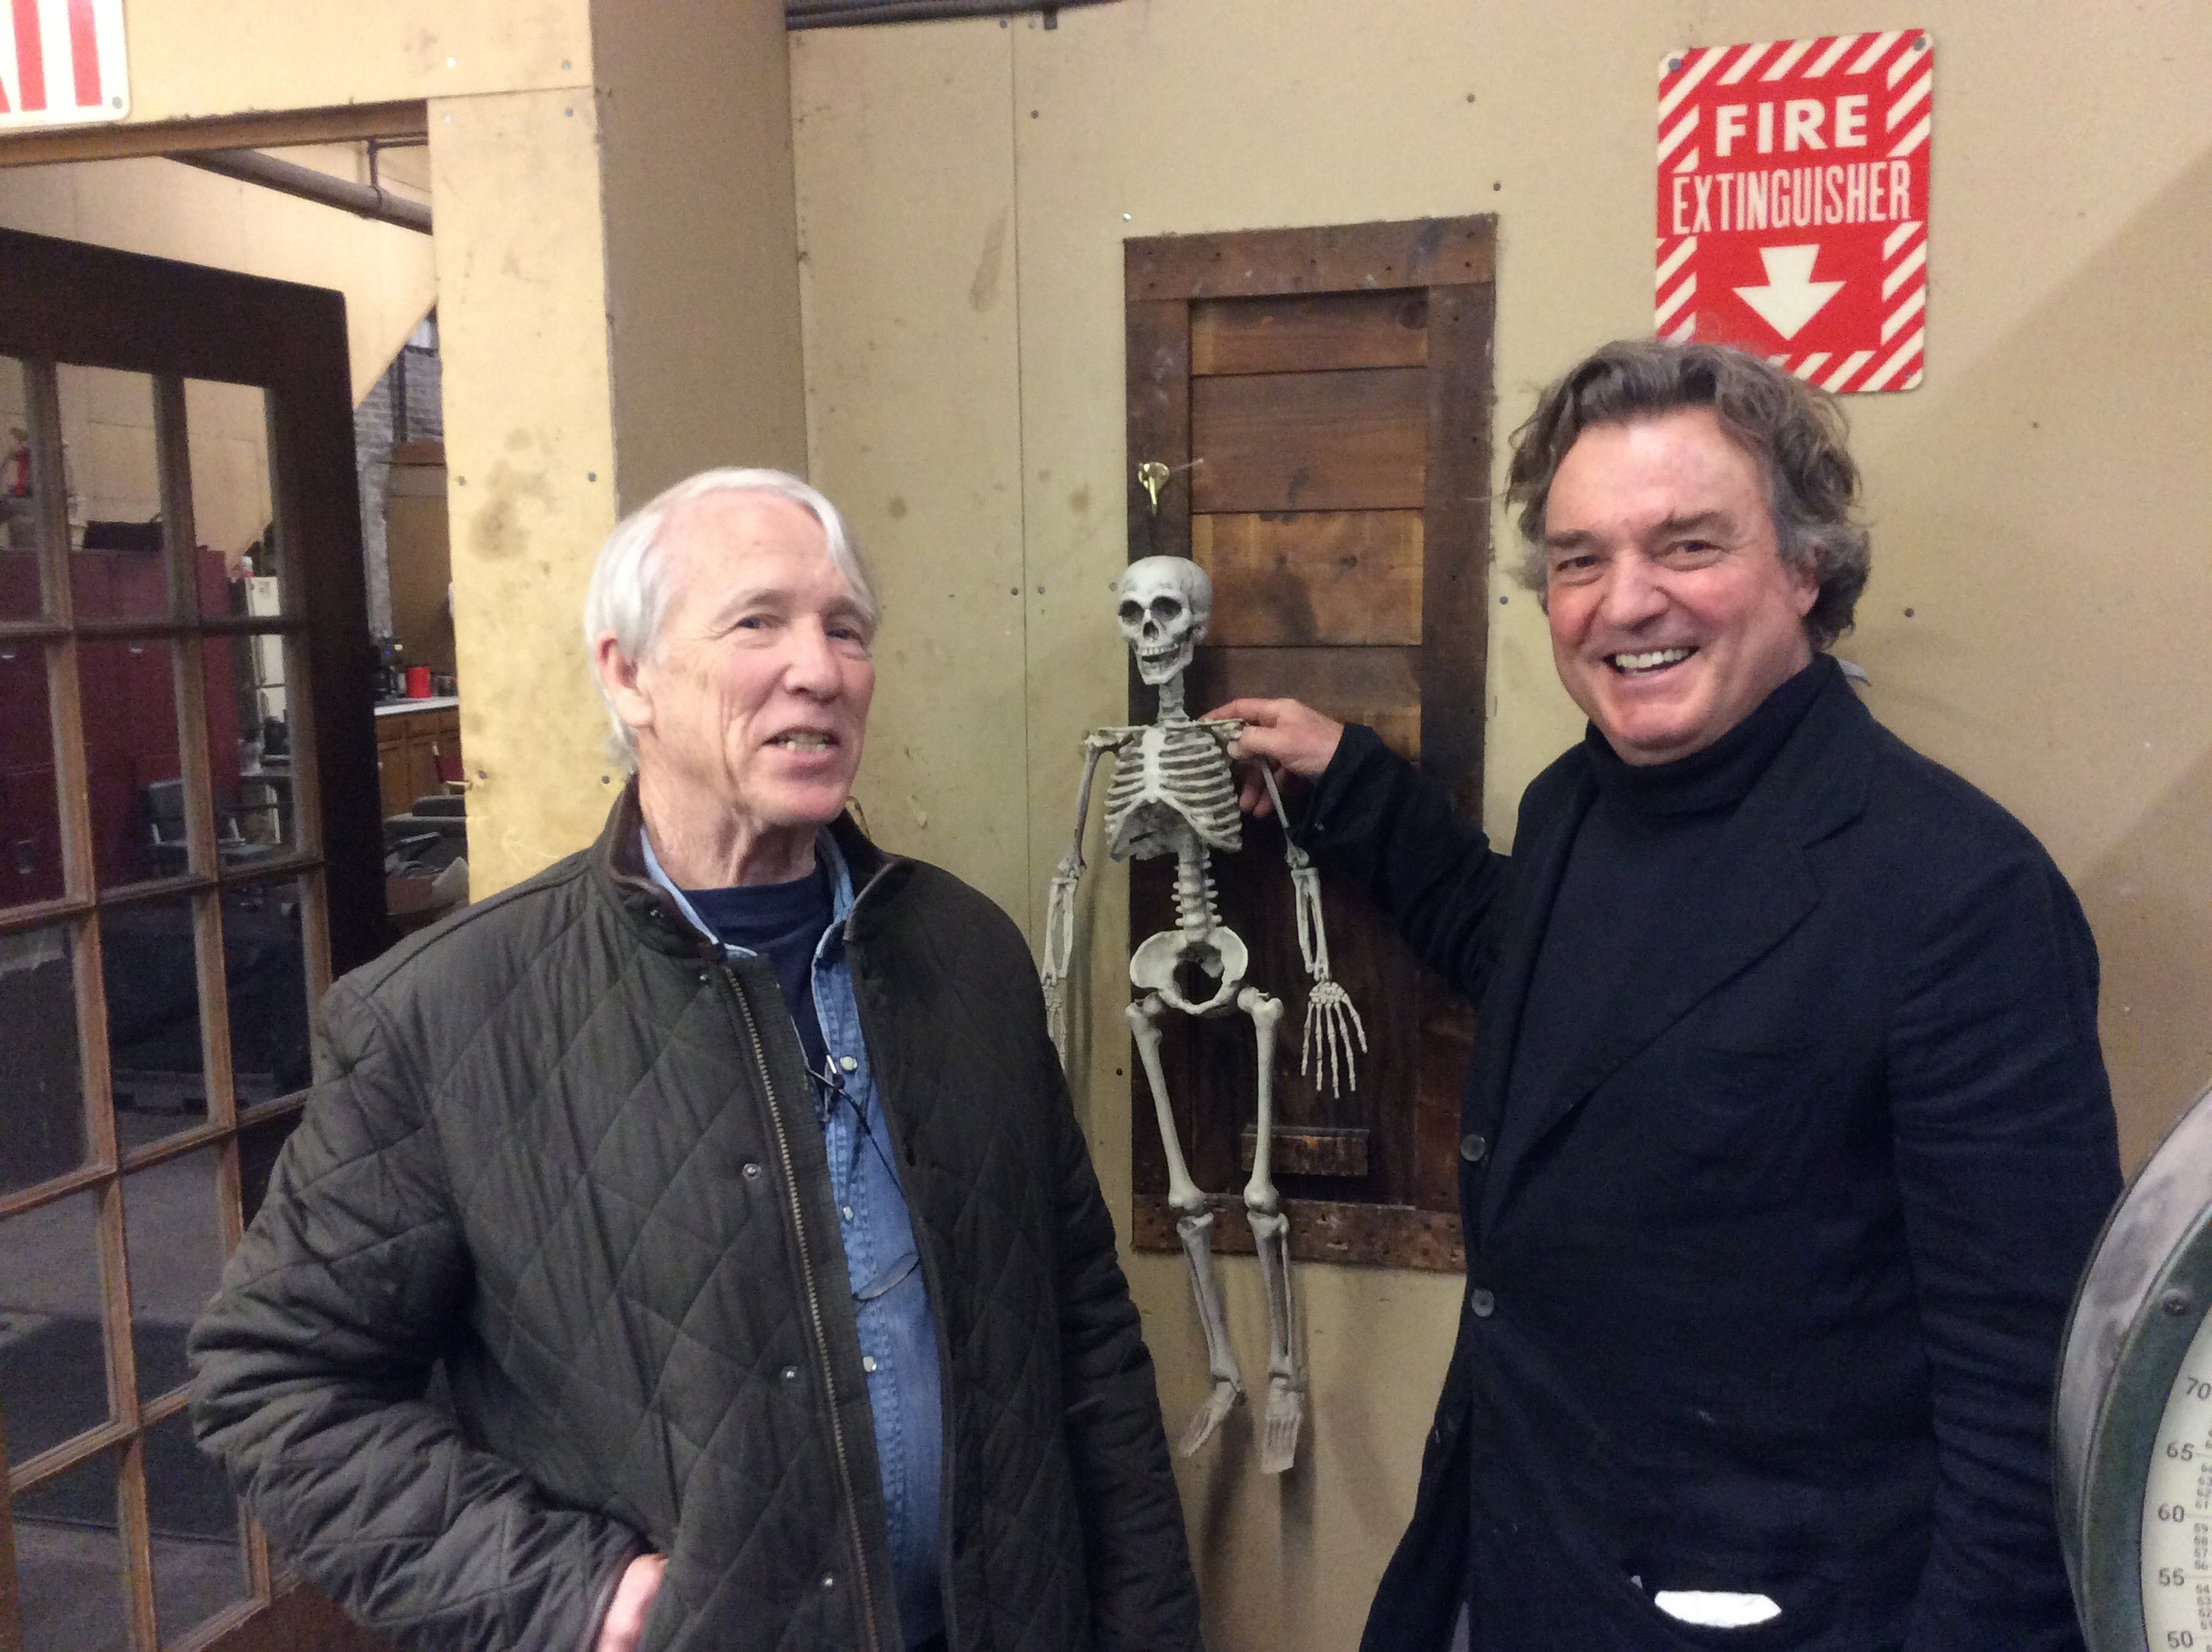 Sculptor André Harvey brought the great Jamie Wyeth by the foundry today!